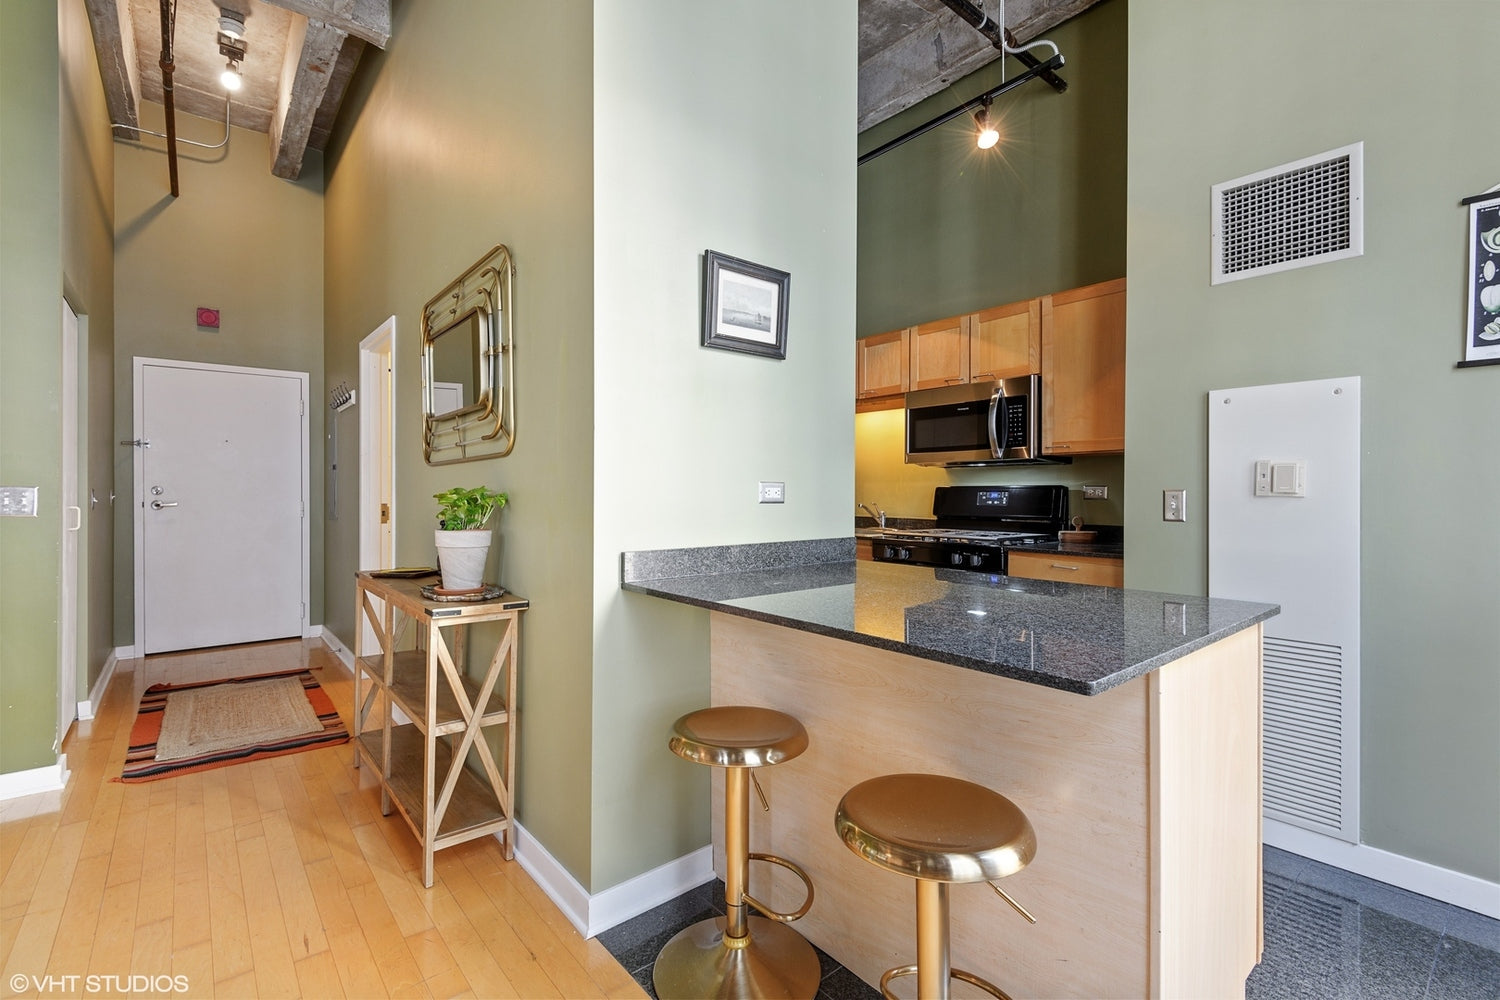 See more of Eskell's real estate staging and get home staging tips for the Chicago real estate market.